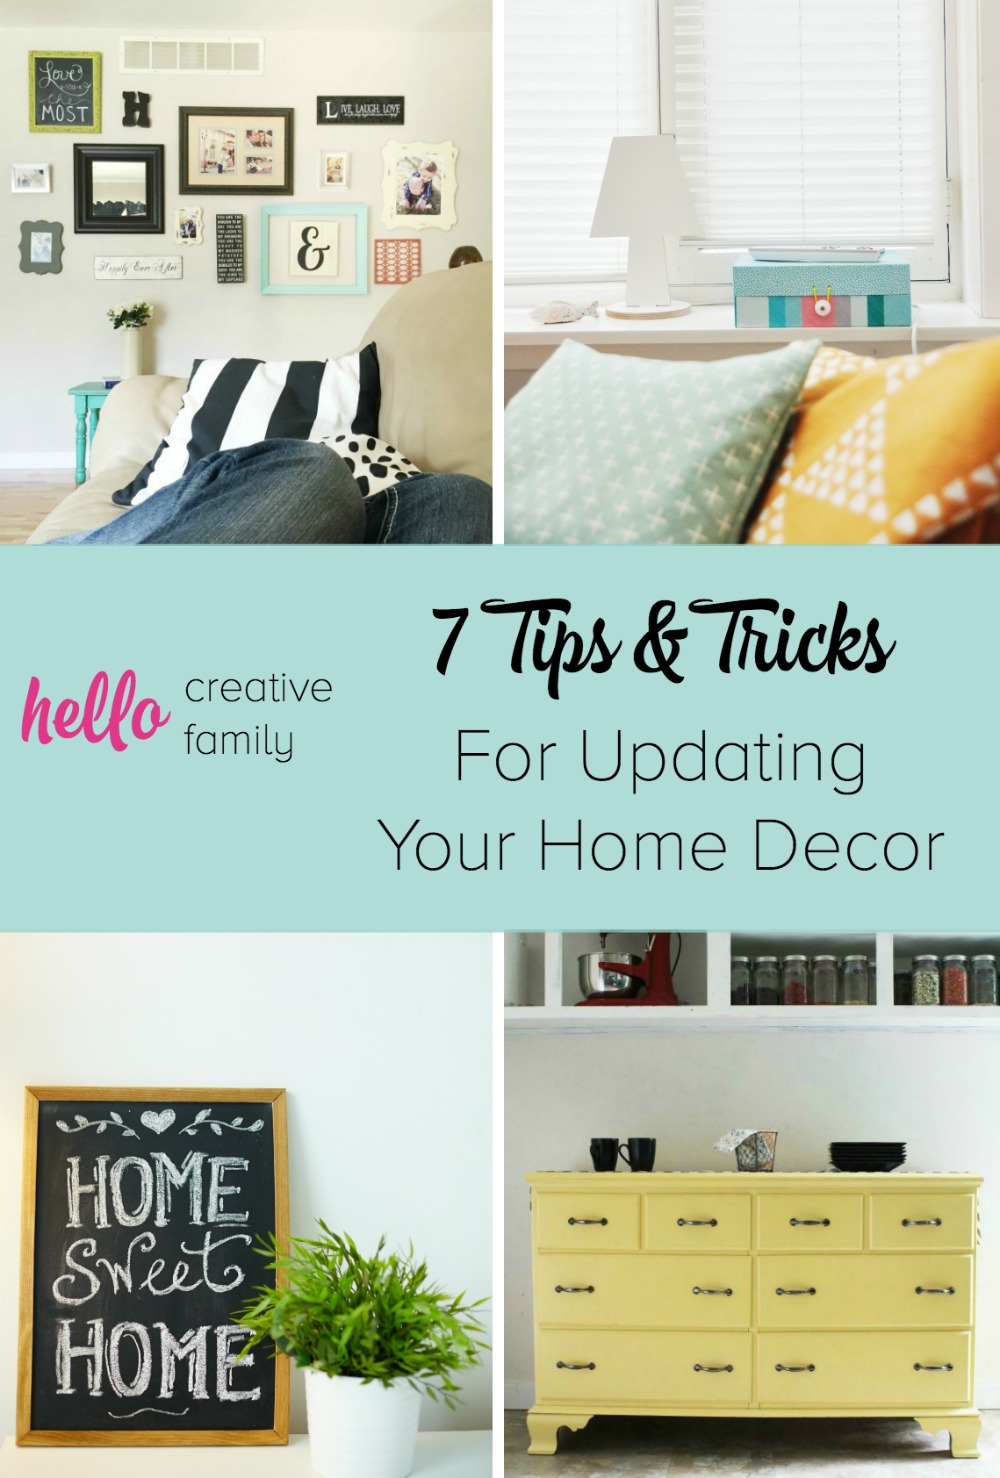 7 Tips and Tricks for Updating Home Decor. 7 Tips and Tricks for Updating Home Decor   Hello Creative Family